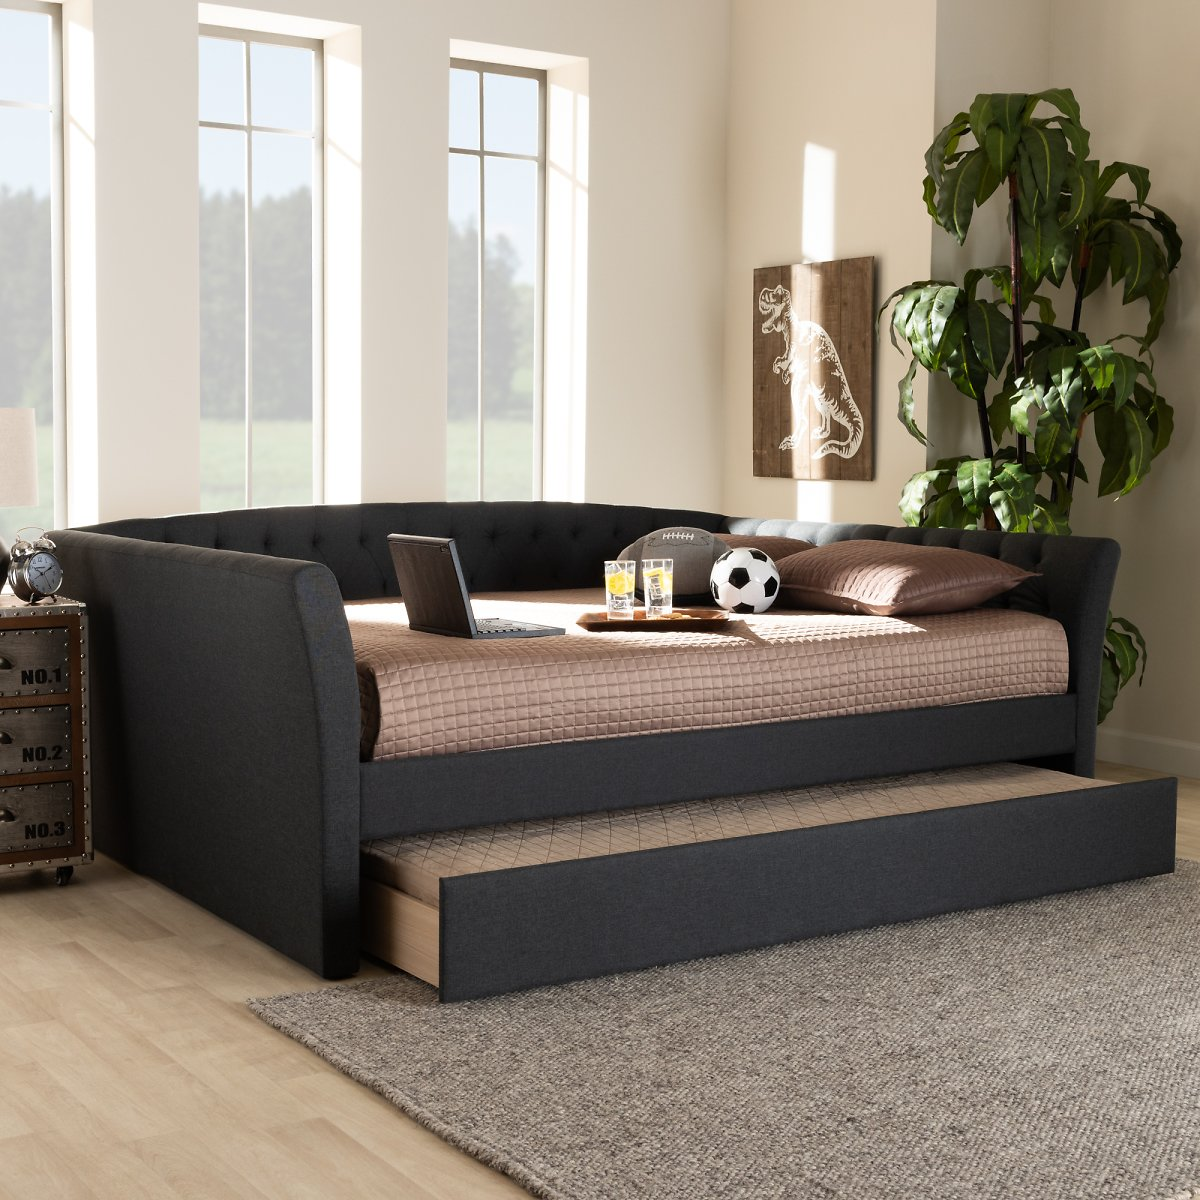 Baxton Studio Delora Dark Gray Upholstered Full Size Daybed with Roll-Out Trundle Bed